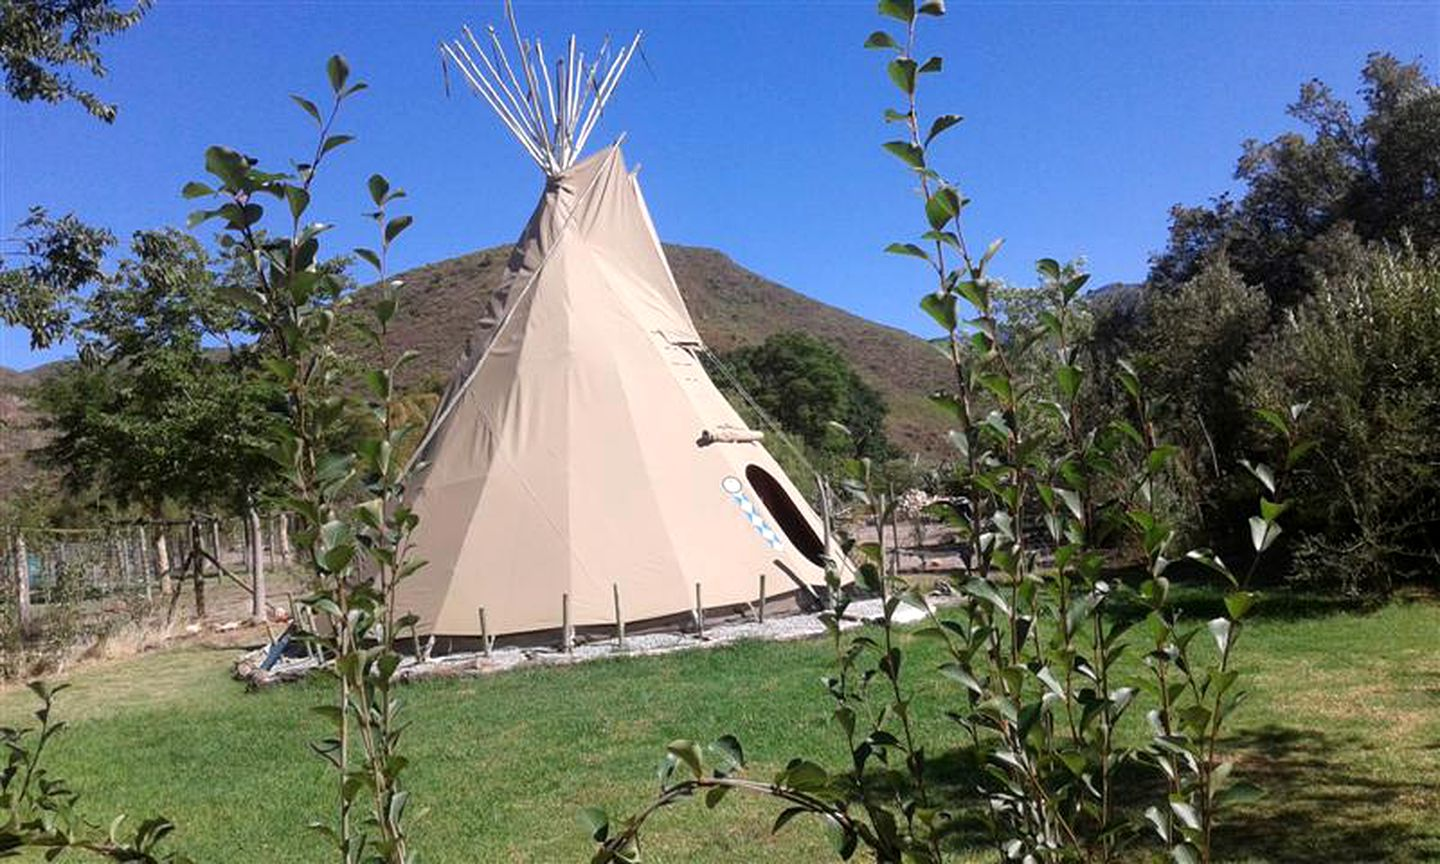 Tipis (Robertson, Western Cape, South Africa)